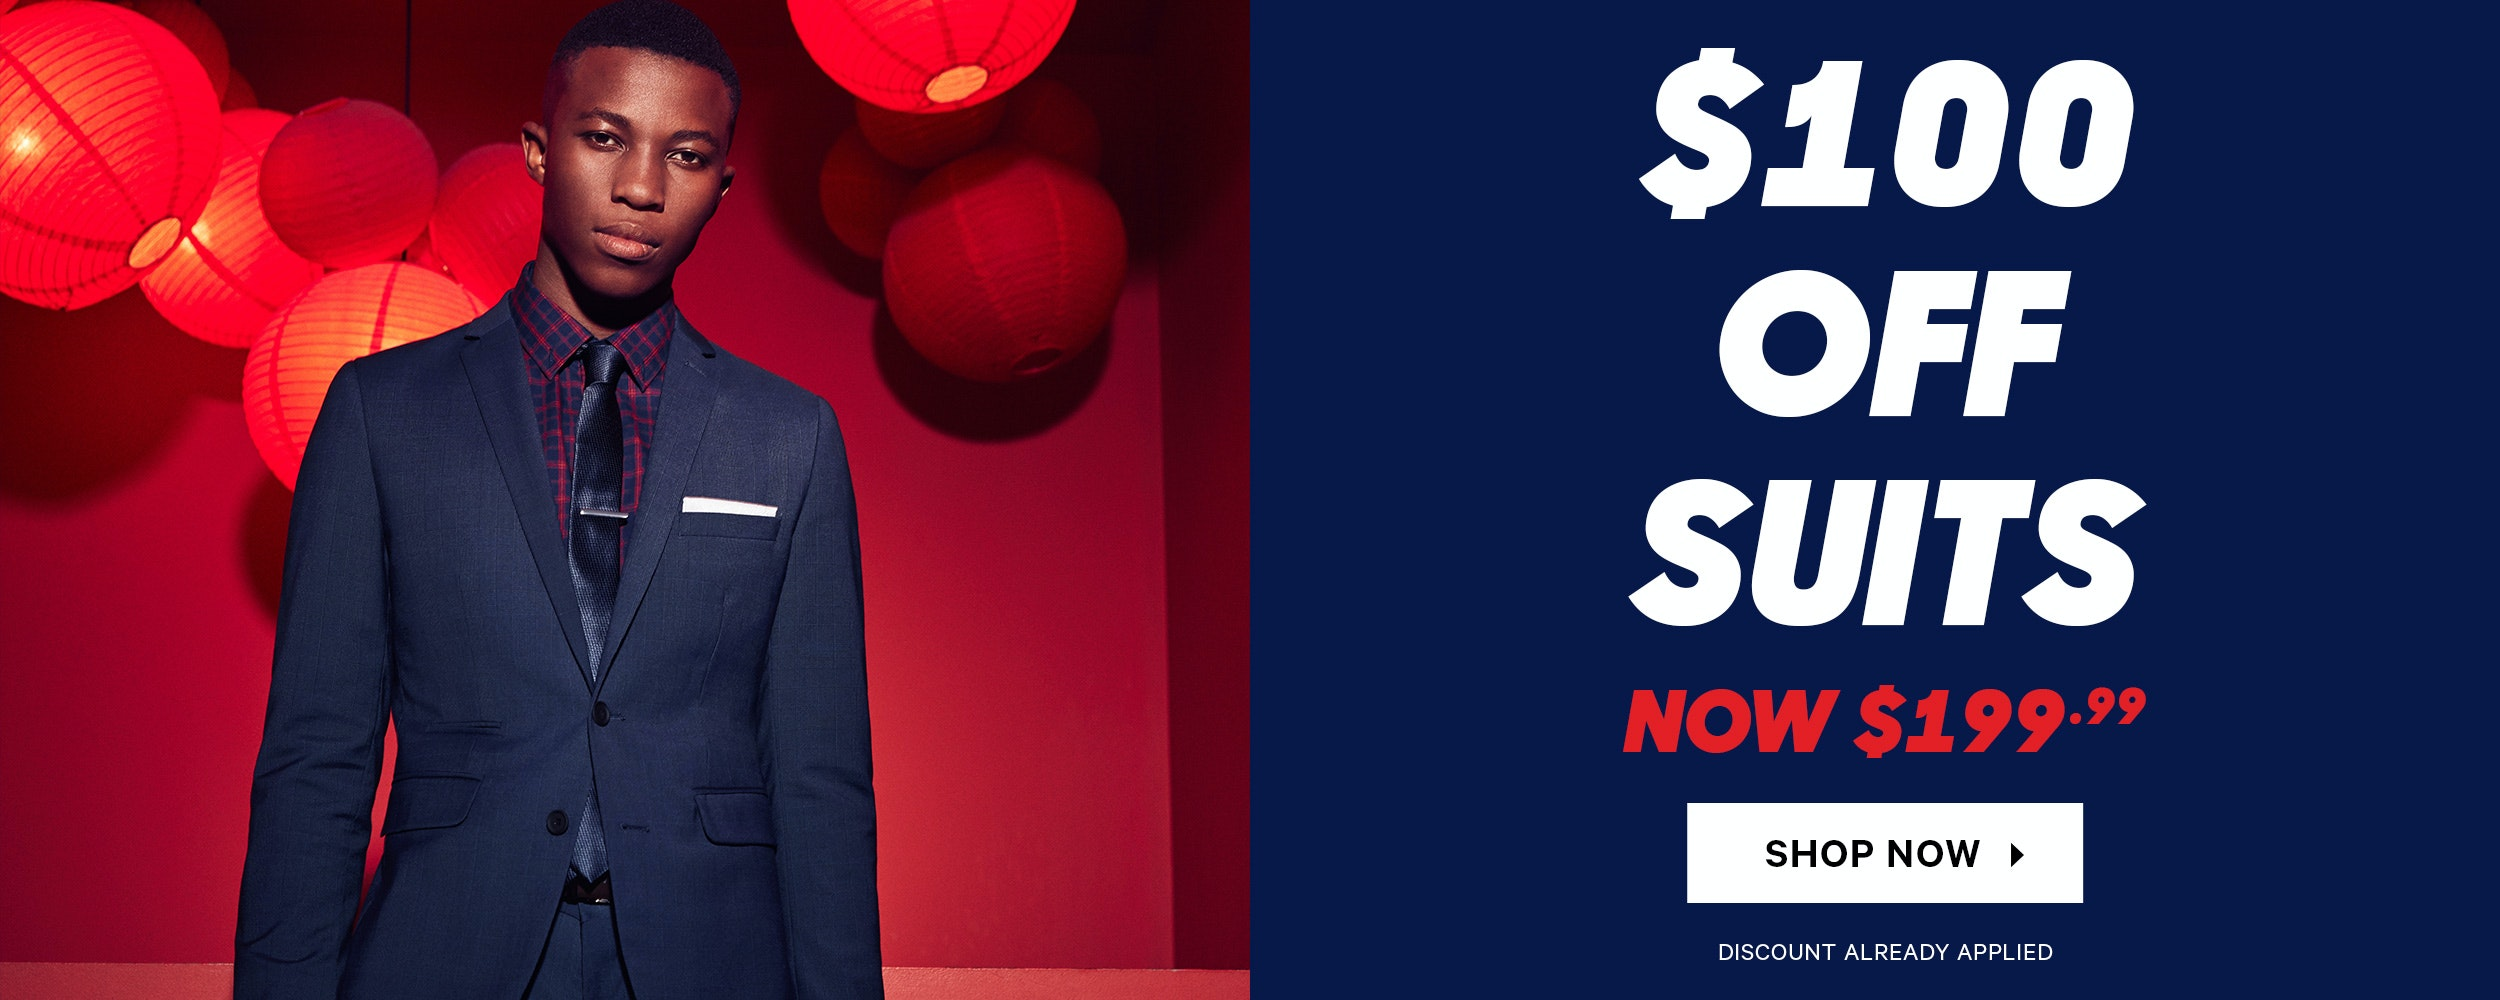 Save $100 Off Mens Suits at yd